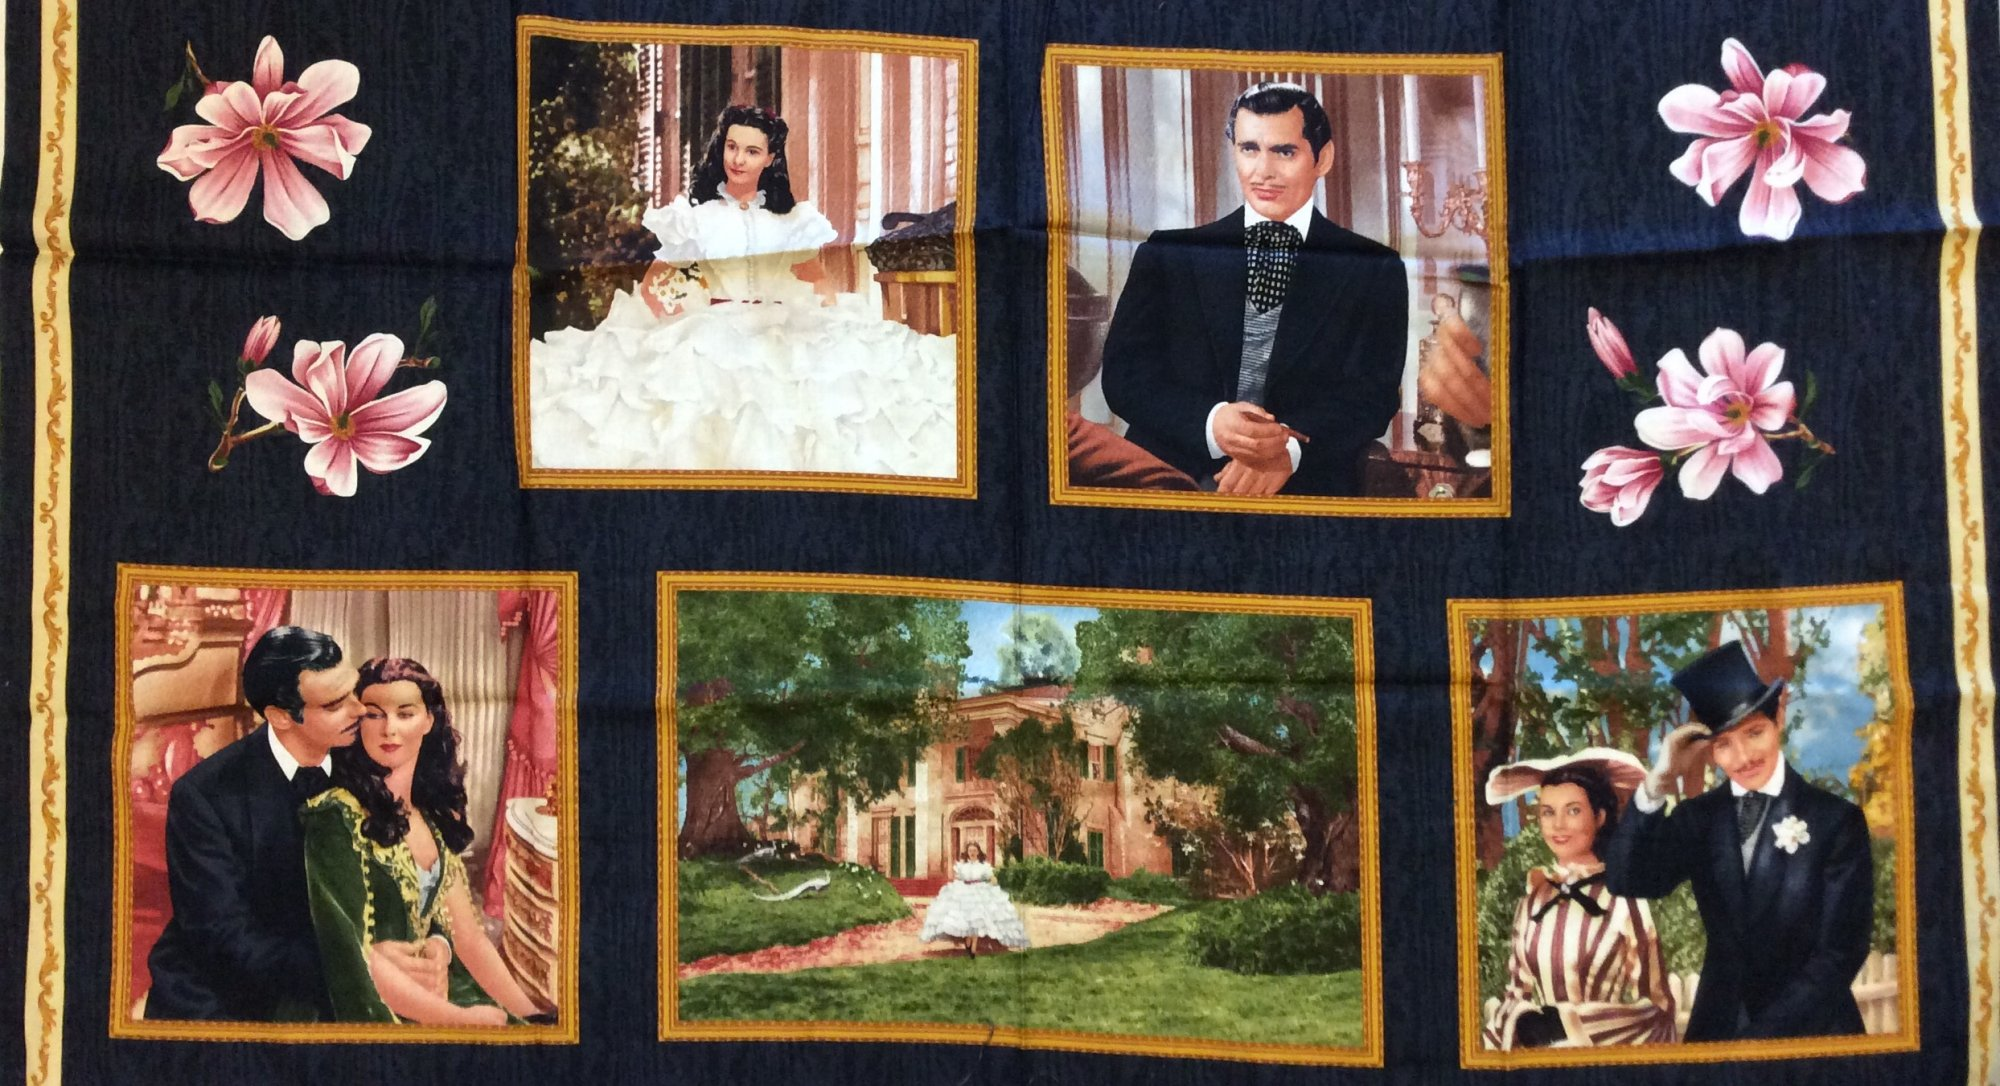 Rare, Out of Print! Gone With the Wind Character Margaret Mitchell Scarlett O'Hara Rhett Butler Vivian Leigh Clark Gable Tara Panel Cotton Quilting Fabric CR181